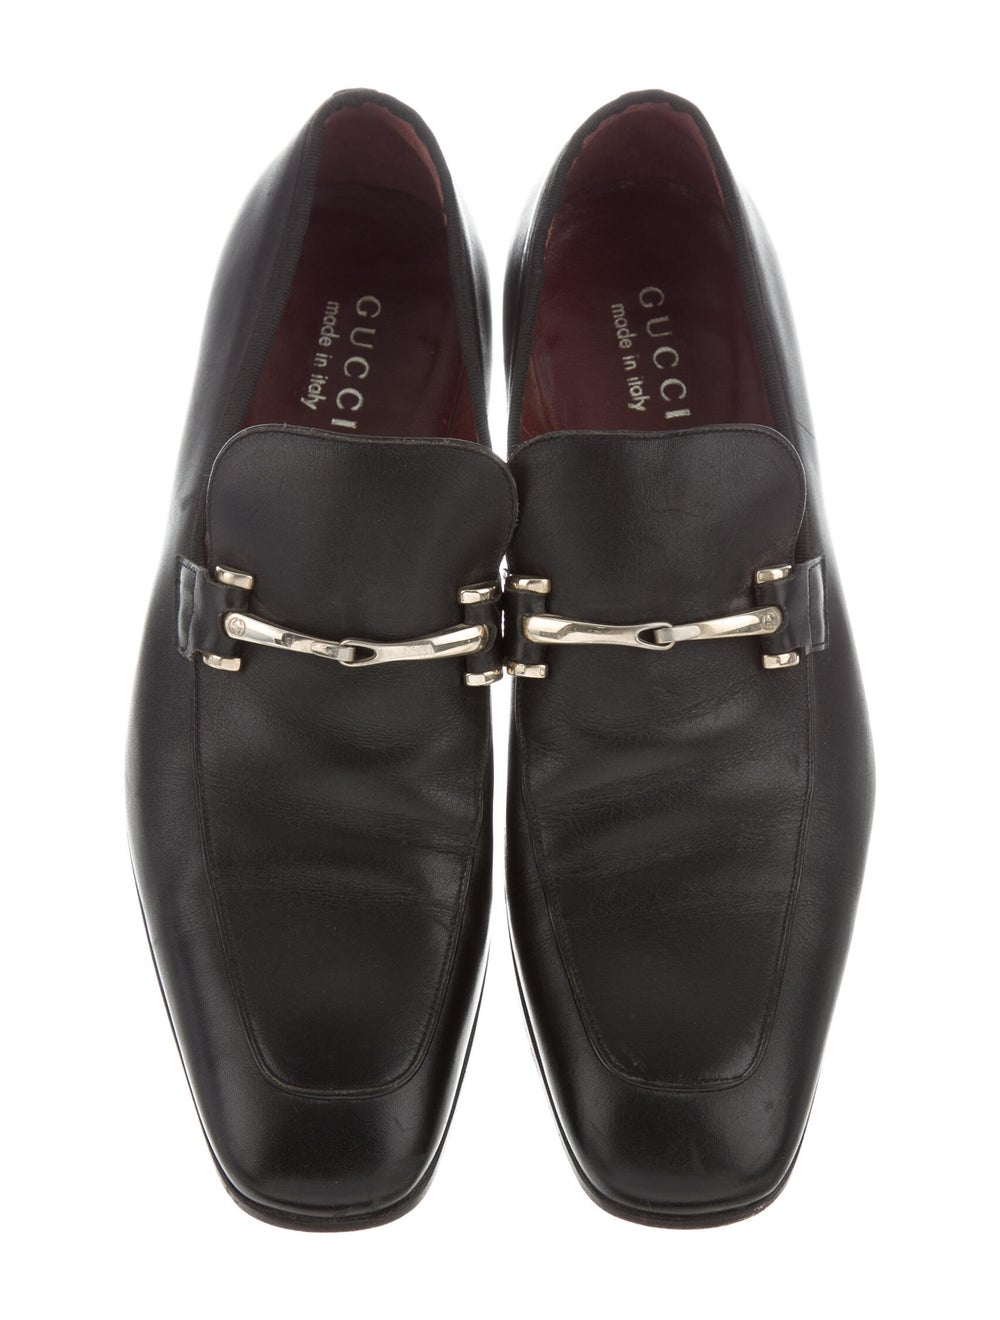 Gucci Leather Loafers Black - image 3